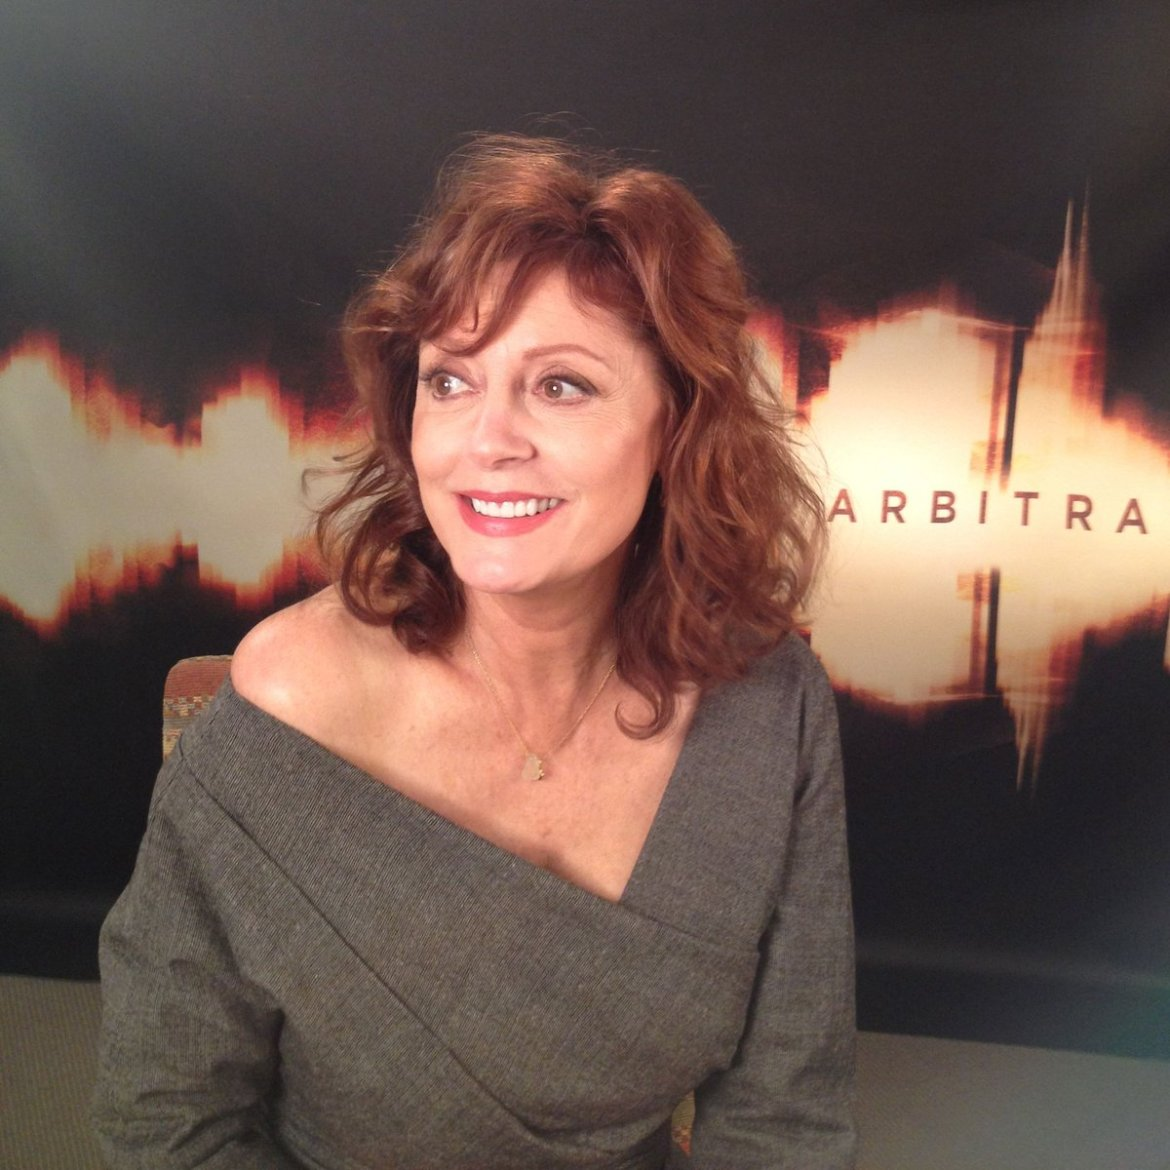 Actress @SusanSarandon Endorses Proposition 205 in Arizona #prop205 #vote